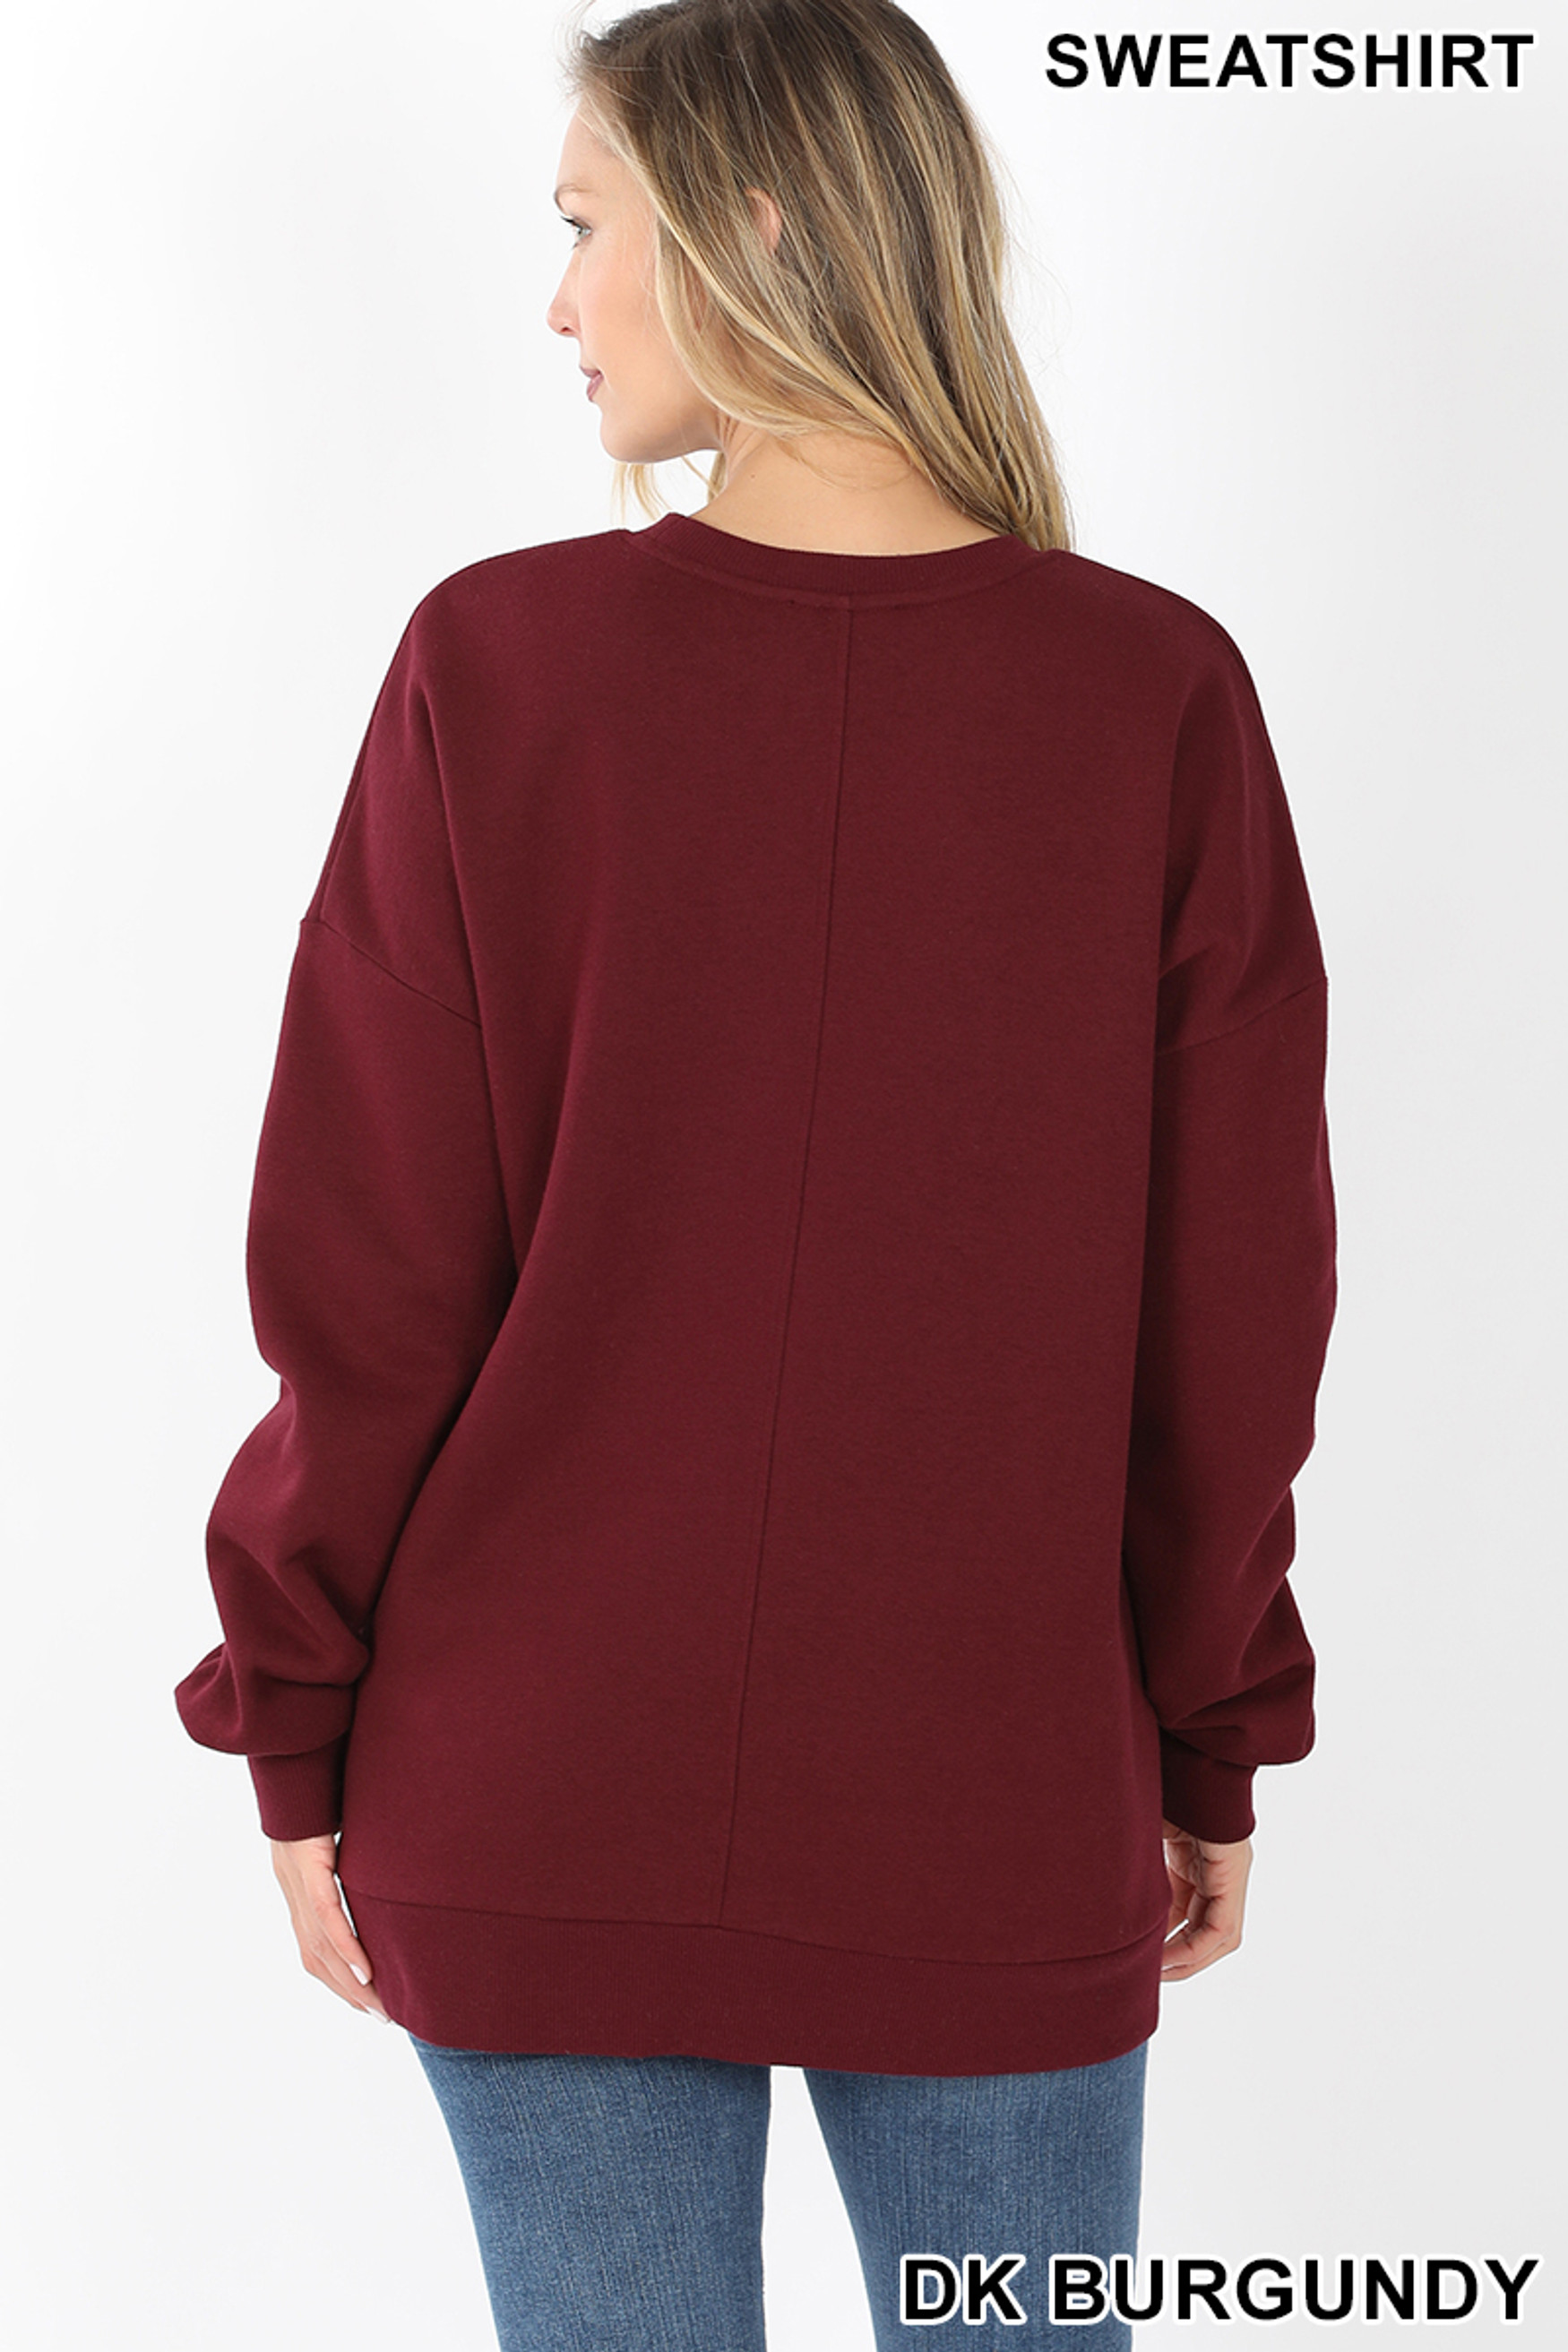 Back image of Dark Burgundy Round Crew Neck Sweatshirt with Side Pockets